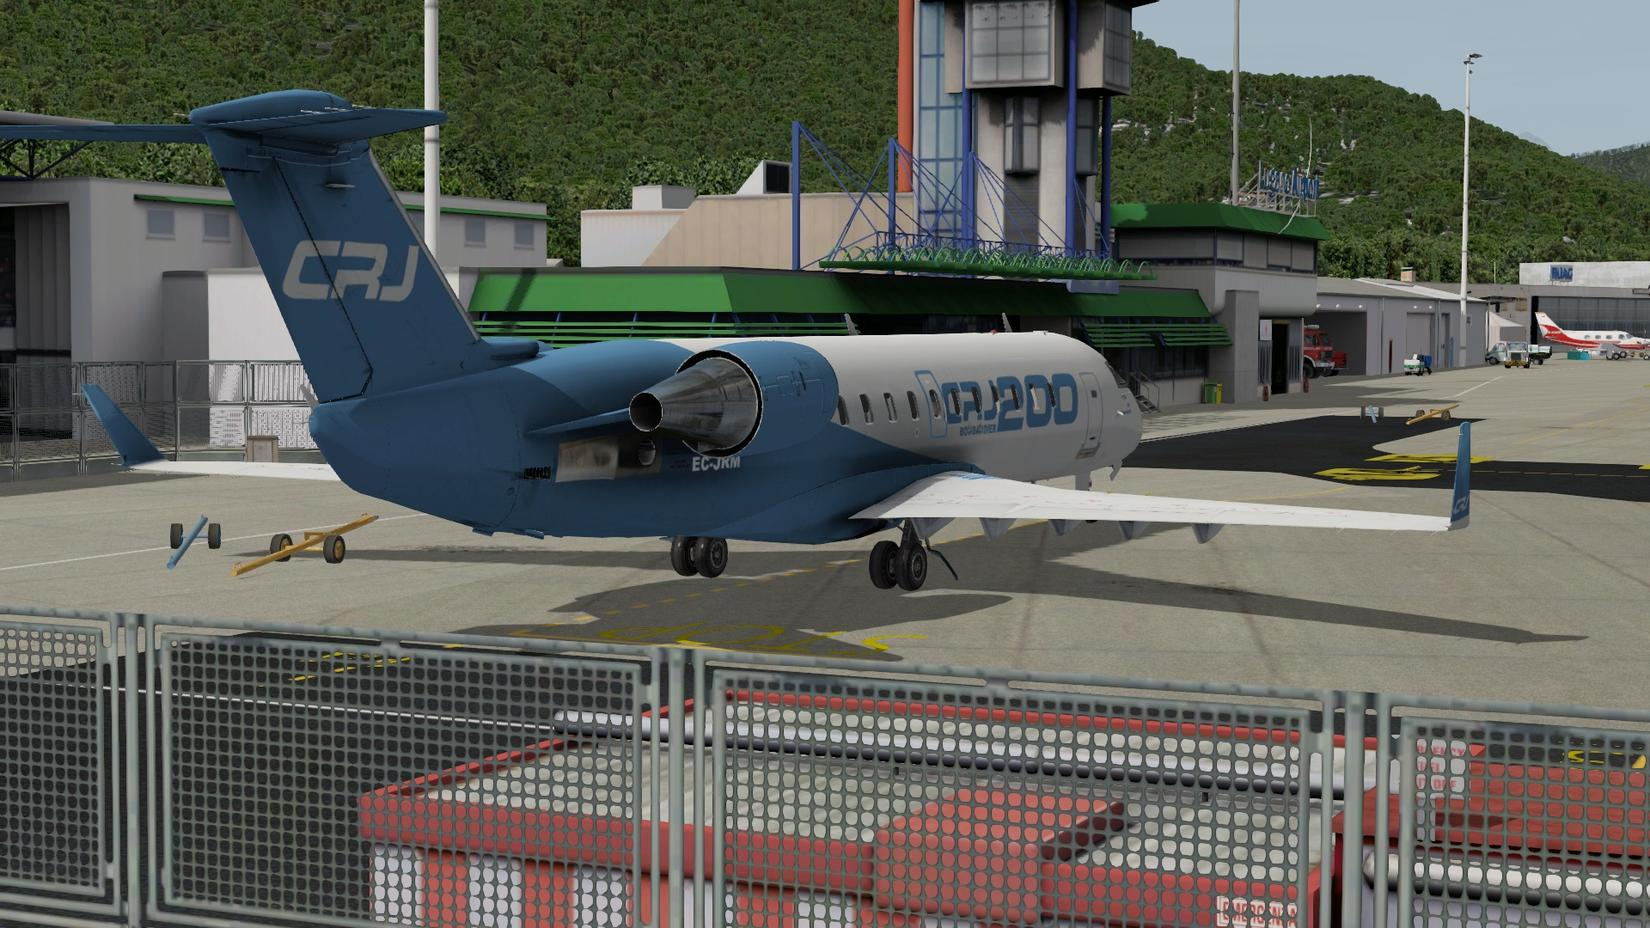 Setting up X-Plane? - SimHQ Forums